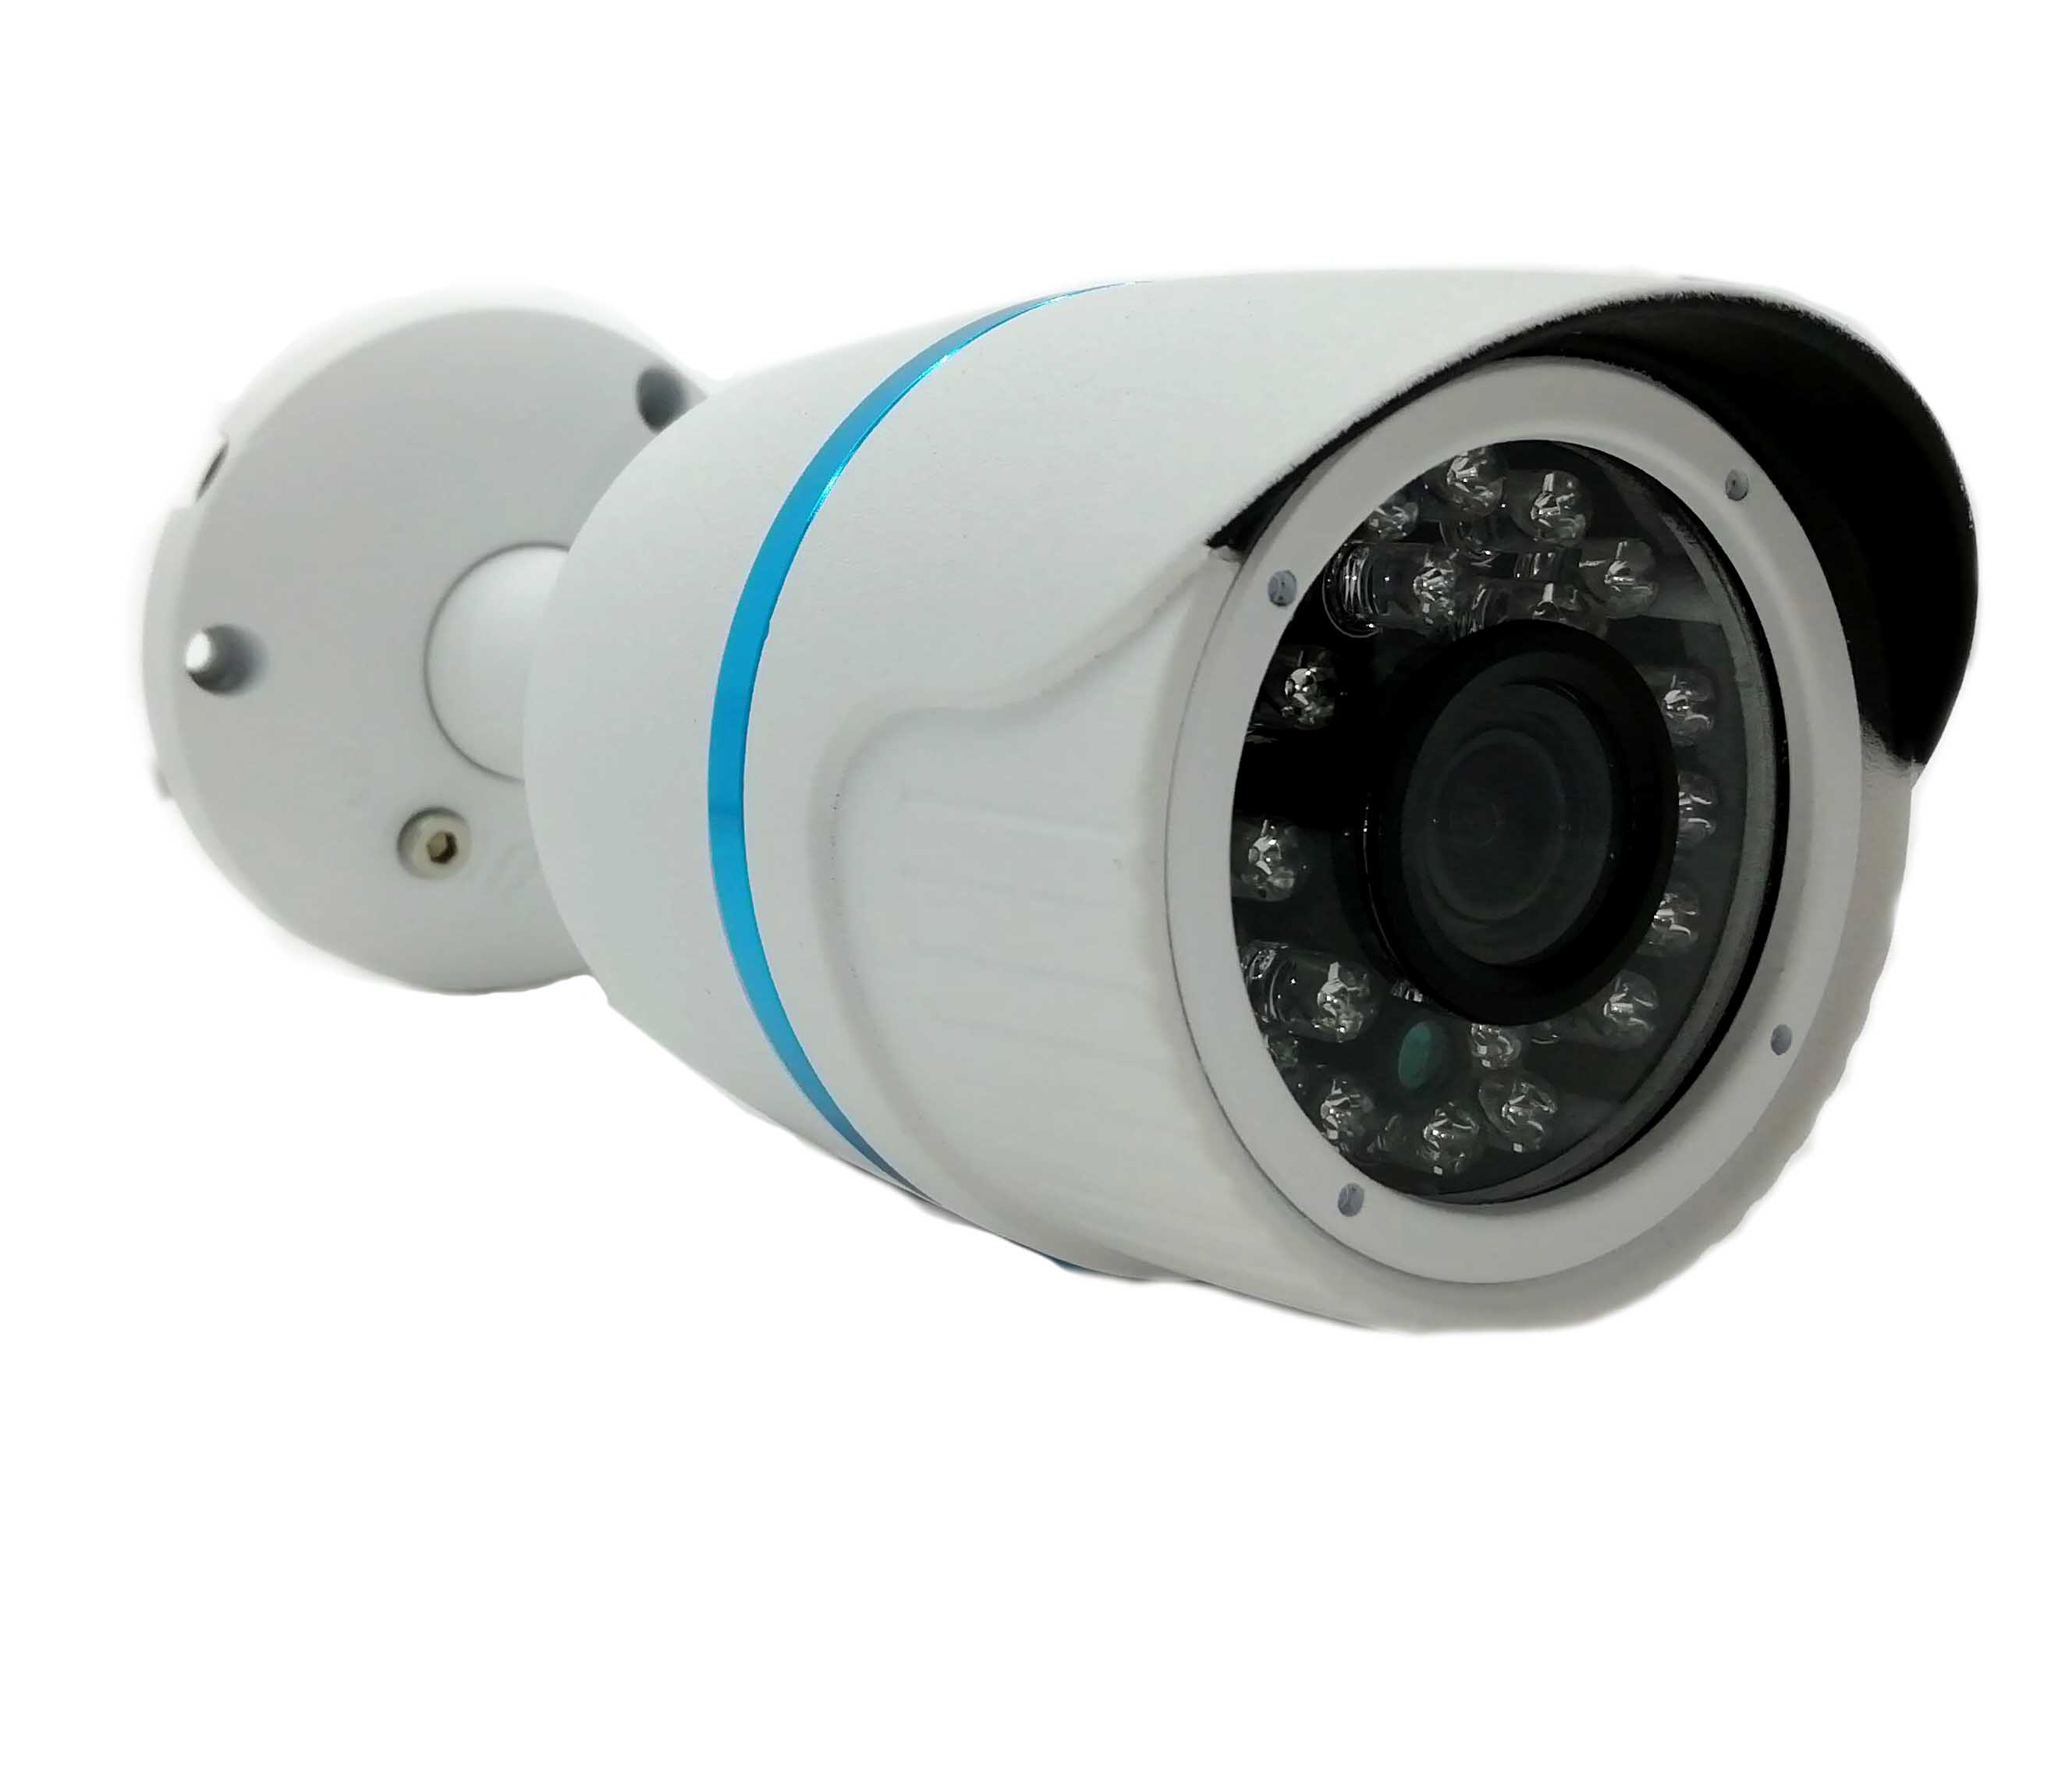 RV-LQ36NIP500H 5mp